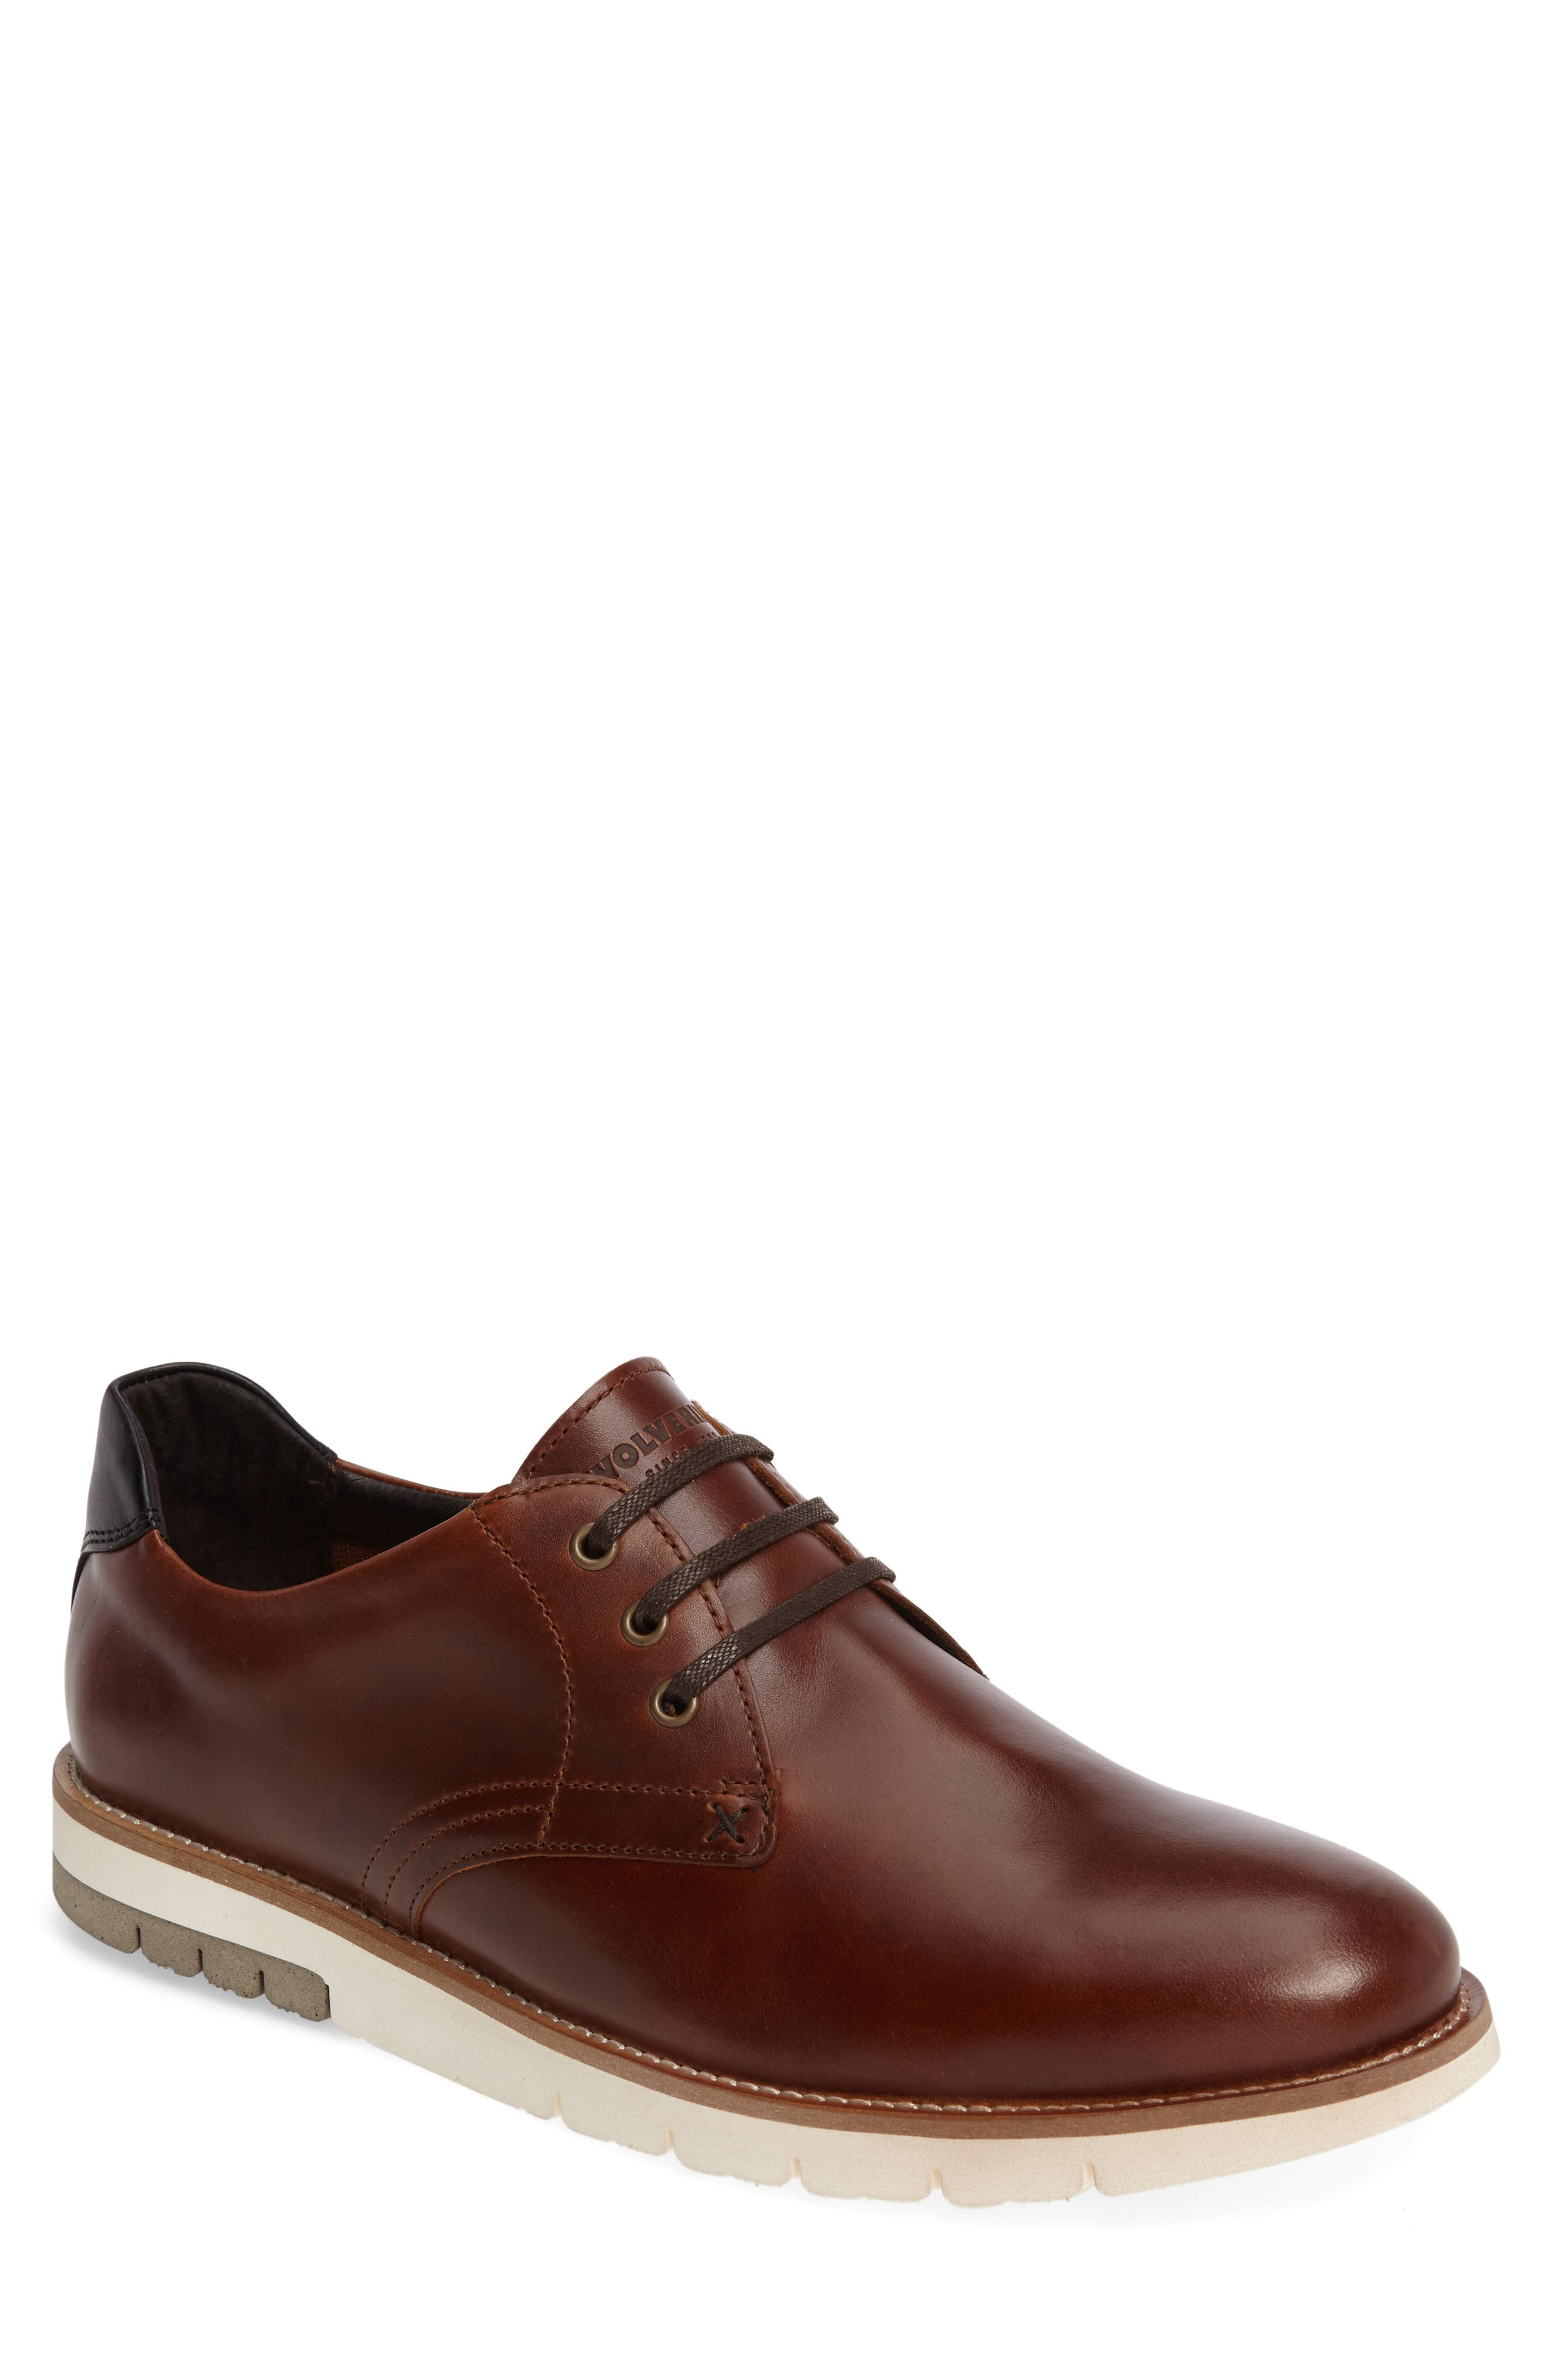 Alternate Image 1 Selected - Wolverine Reuben Plain Toe Derby (Men)